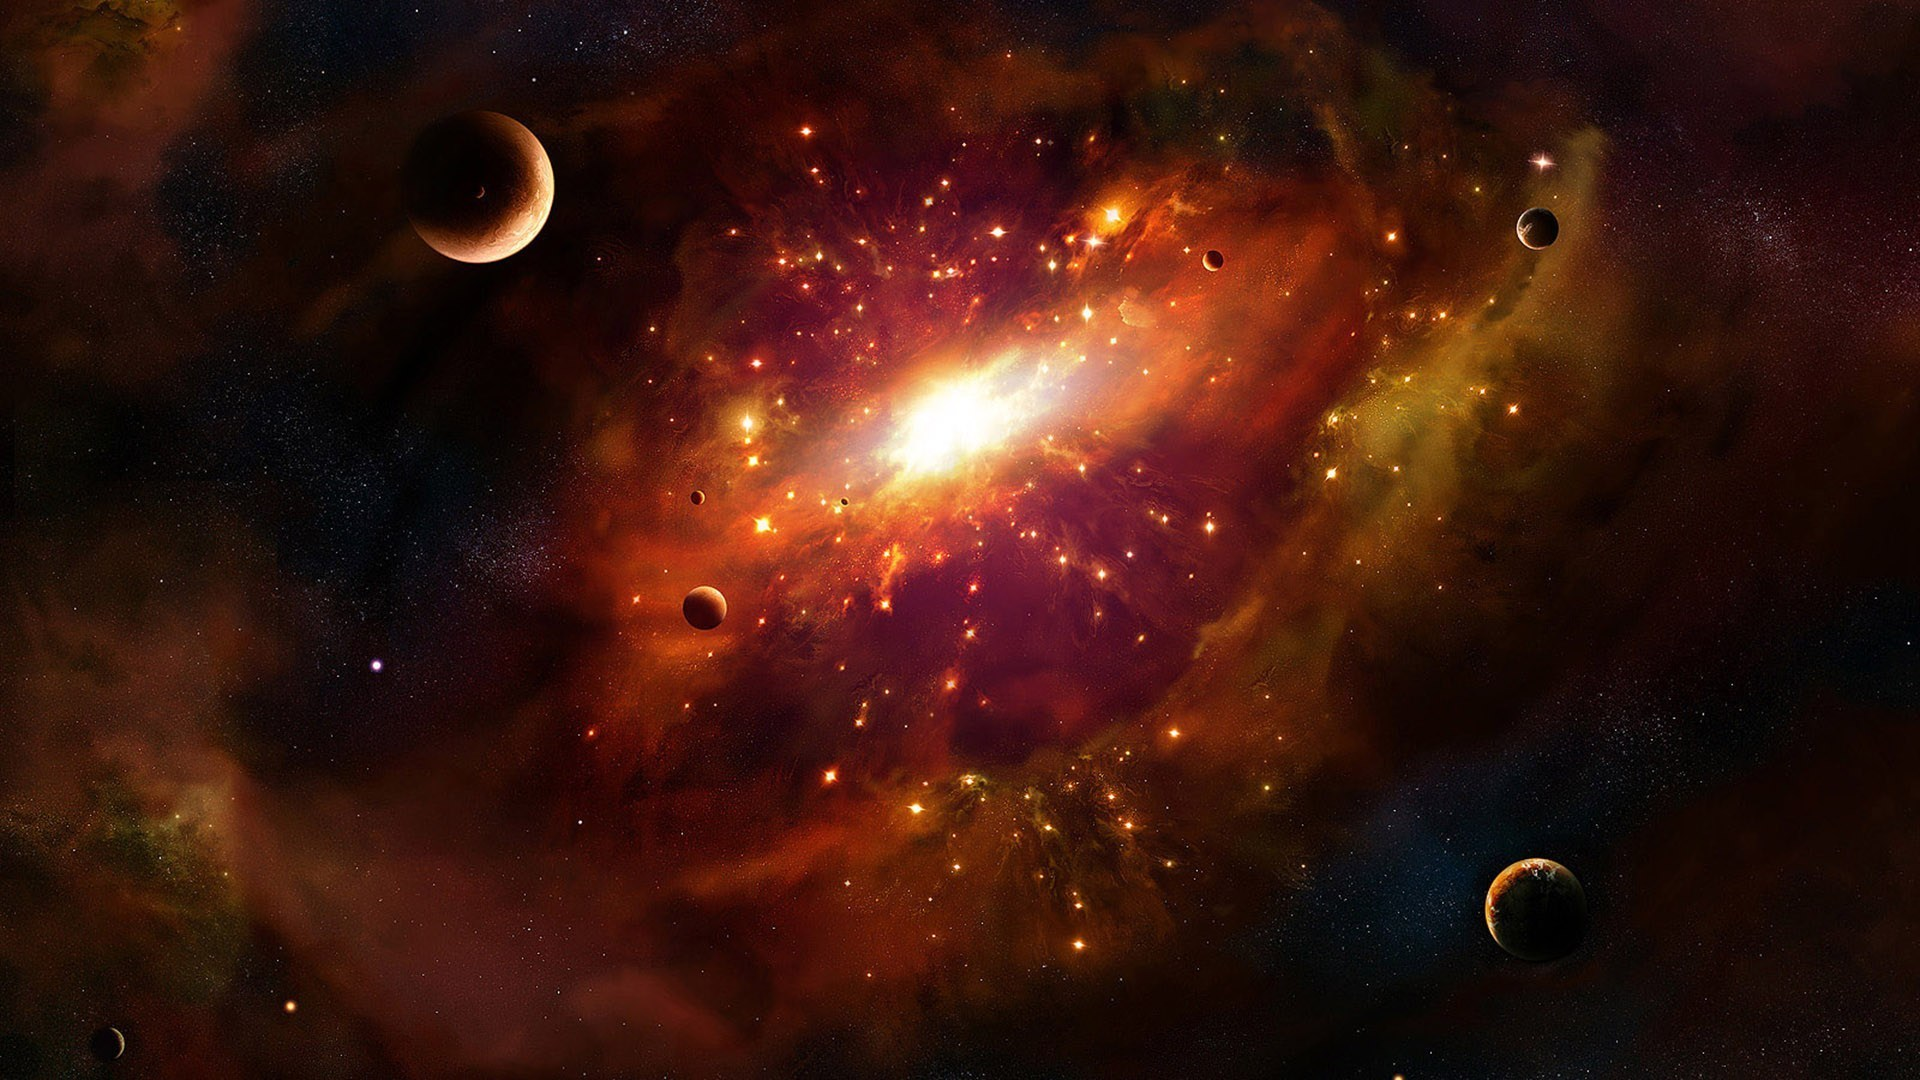 Description Galaxy Wallpaper is a hi res Wallpaper for pc desktops 1920x1080